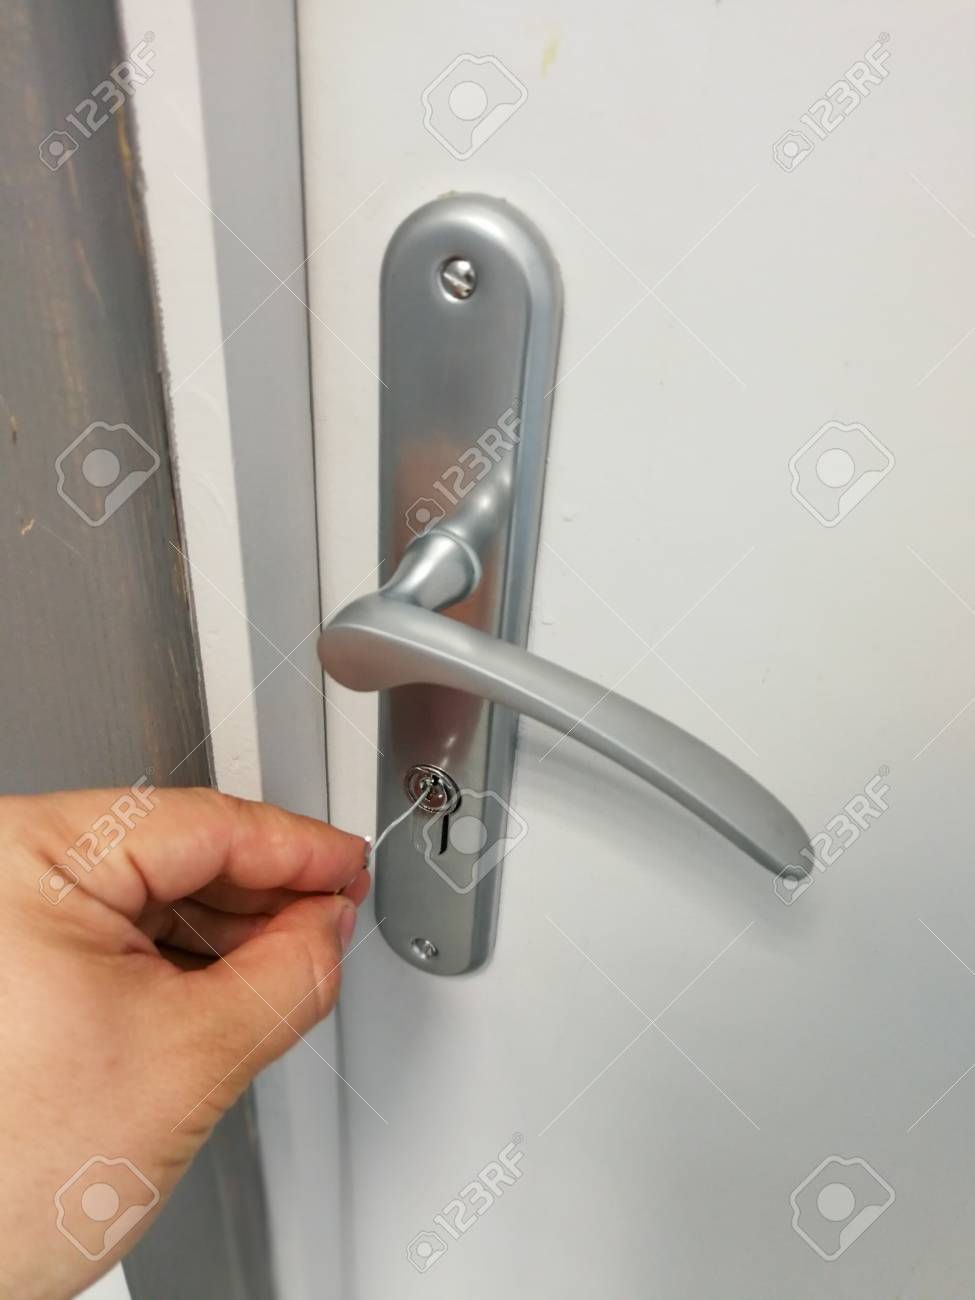 How To Unlock A Door Without A Key >> Small Metal Wire Inserted In The Keyhole Of The Door For Unlocking